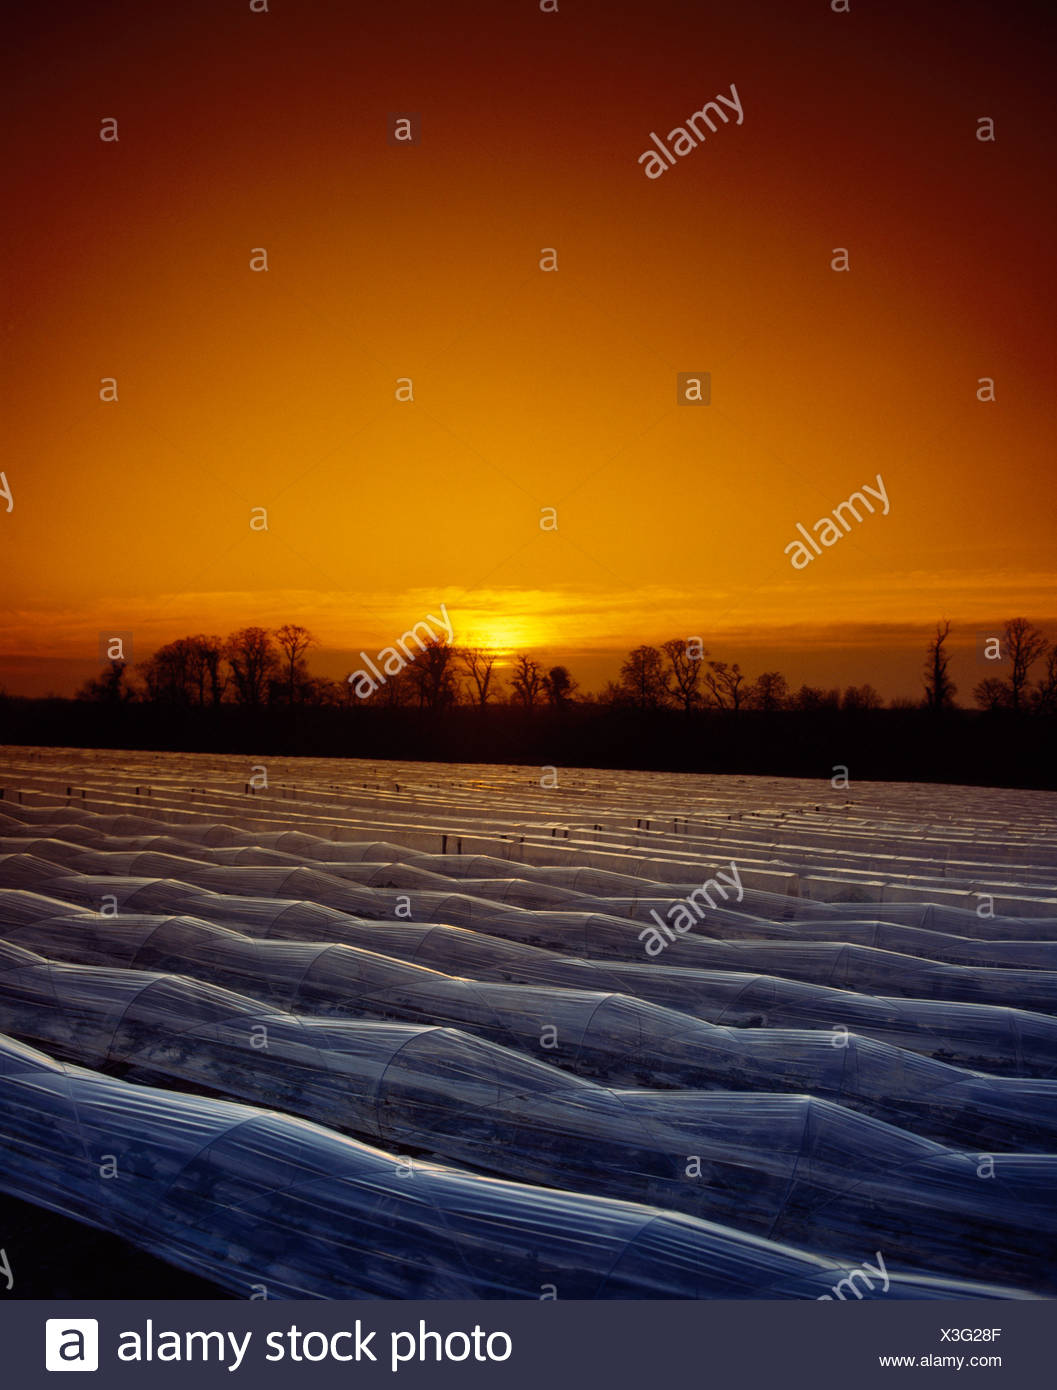 Strawberries Under Cloches - Stock Image